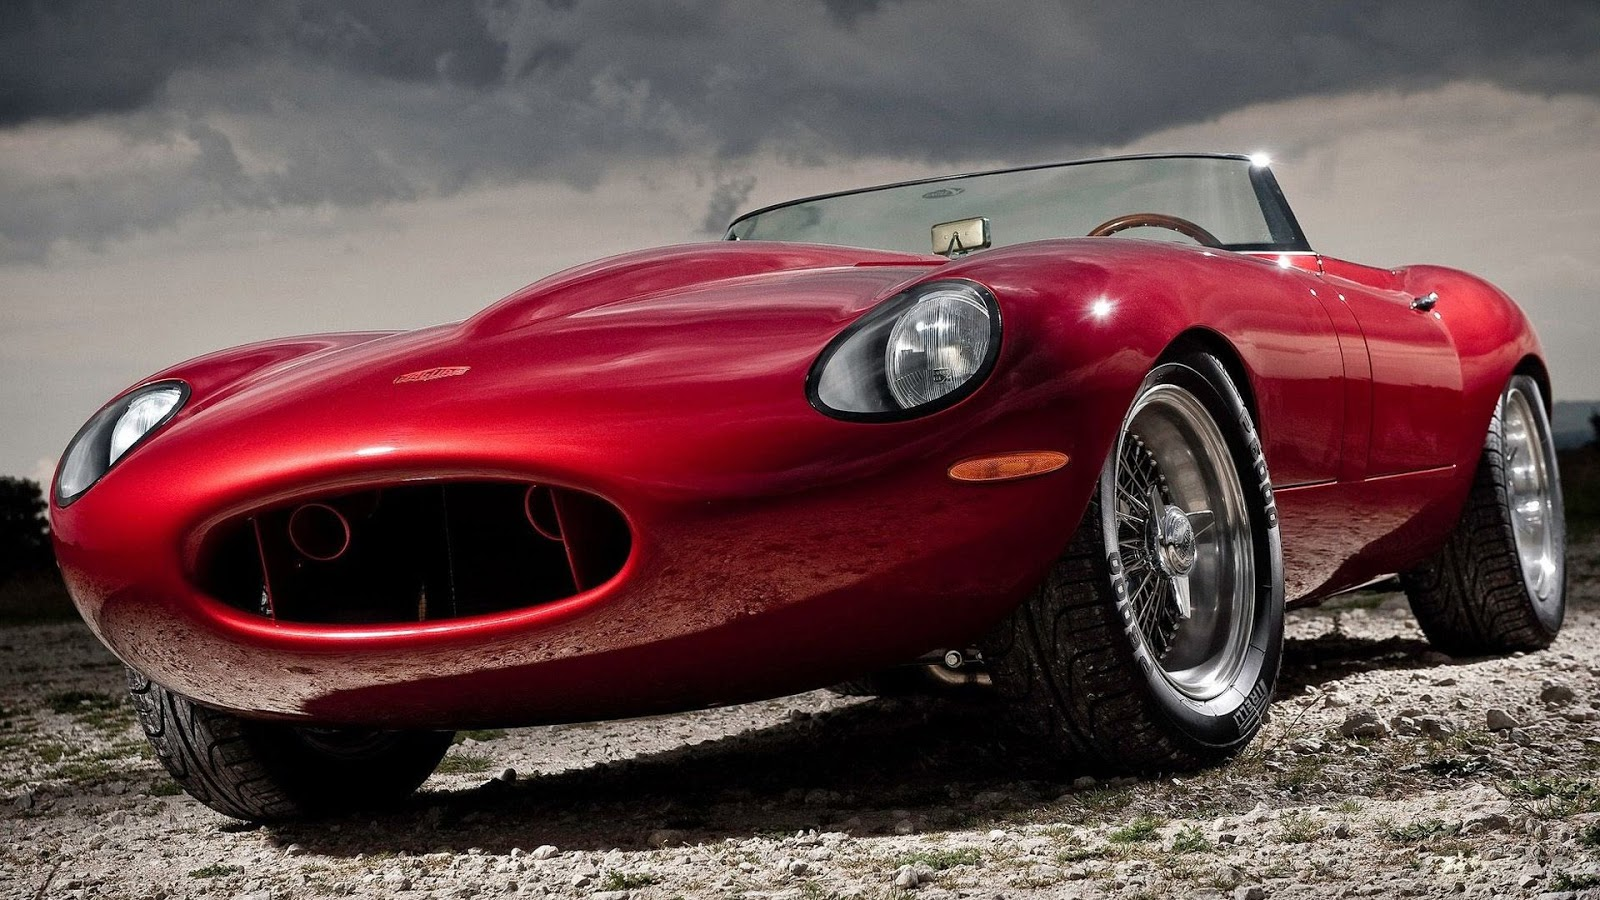 Wallpapers Of Beautiful Cars Jaguar E Type Eagle Speedster HD Wallpapers Download free images and photos [musssic.tk]